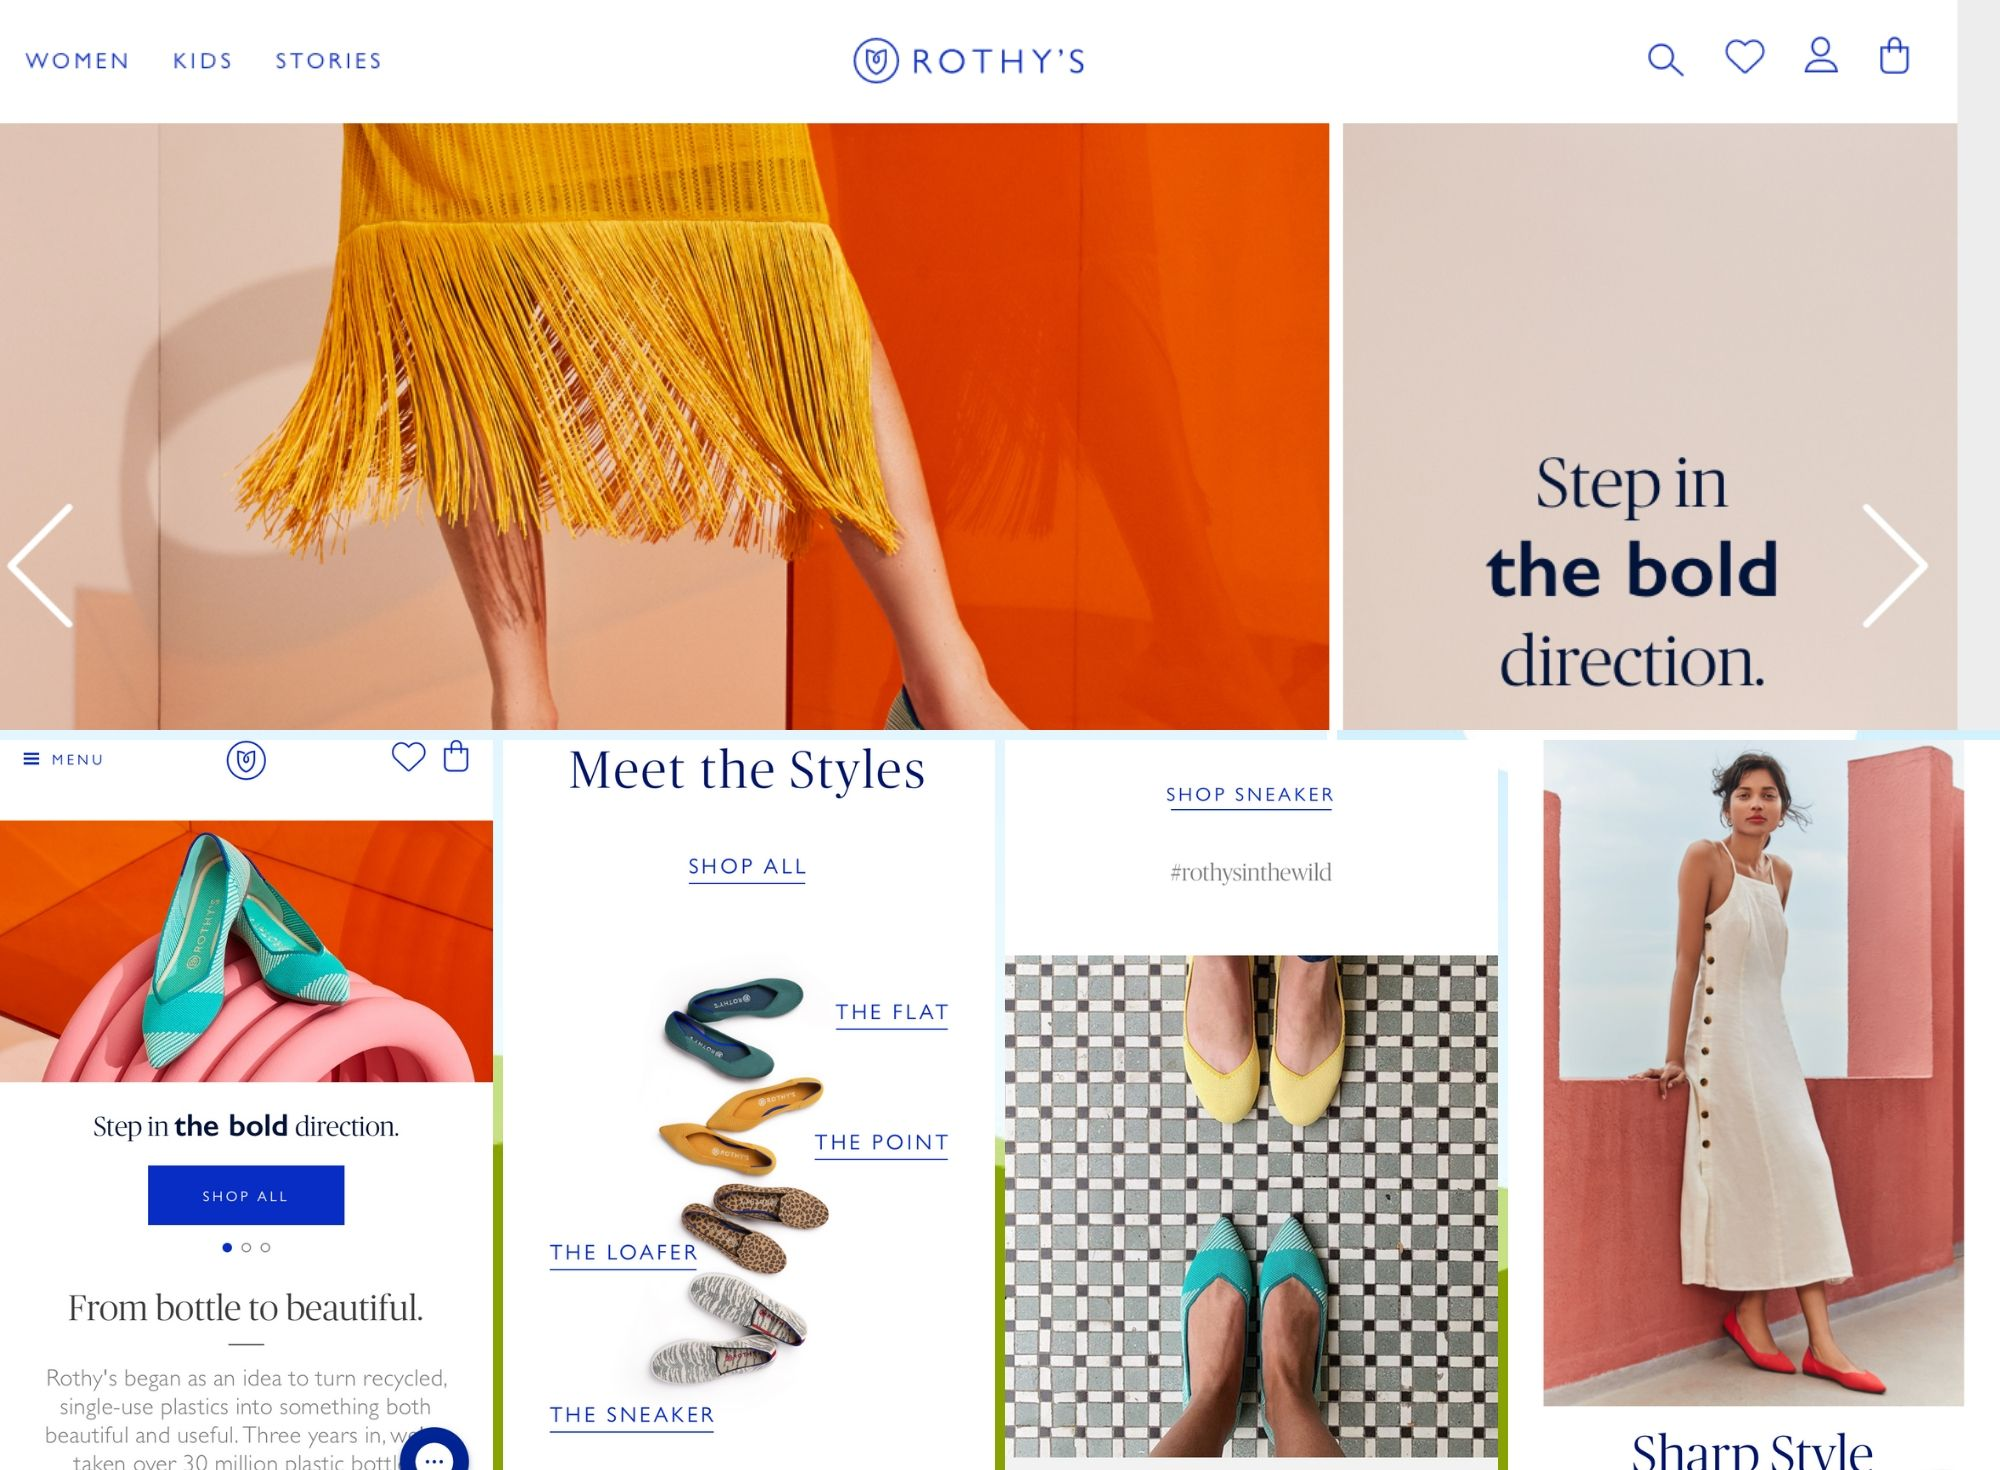 Rothys.com Example of Mobile & Desktop image Optimization